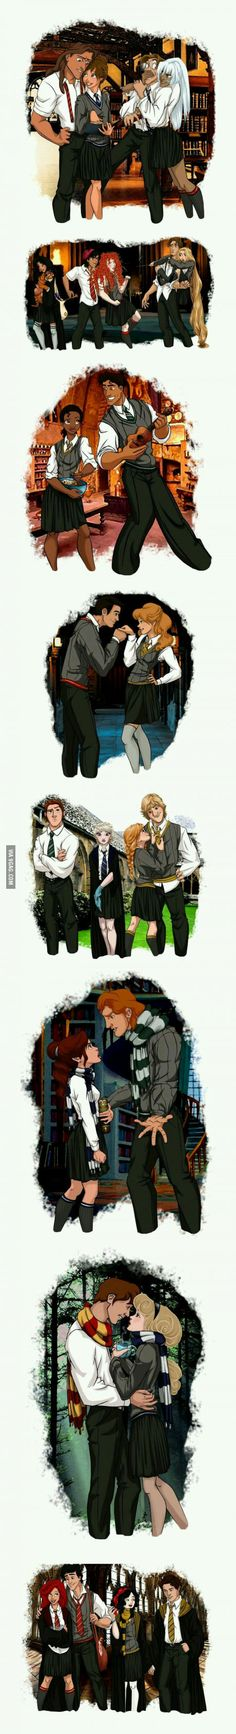 Disney characters reimagined as Hogwarts students.